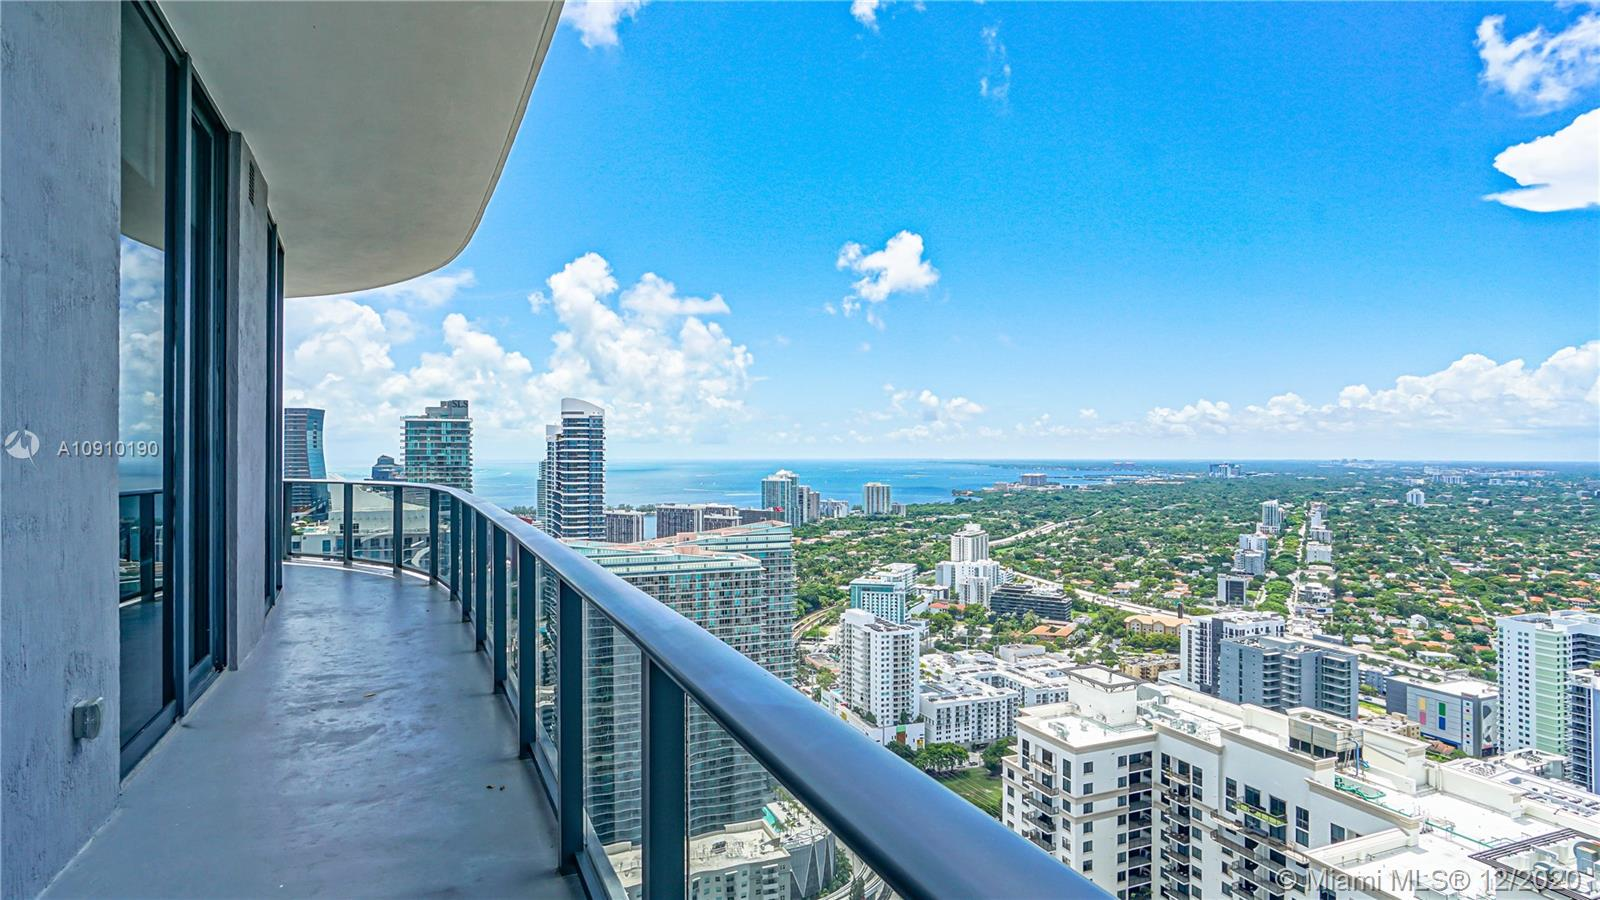 Stunning Penthouse located in the heart of Brickell! This magnificent unit has 4 bedrooms, 4.5 bathrooms & 2 Parking spaces assigned. Each room has their own private bathroom + a guest powder room, porcelain floors throughout, gourmet kitchen facing the Miami Skyline with top of the line appliances. High Ceilings and 180 degree view with wrap around balcony, dramatic floor-to-ceiling high impact glass windows Eastern, Southern & Western exposure and open kitchen with top of the line appliances . Enjoy the best amenities featuring sauna, roof top pool, clubhouse, billiard Room, outdoor fitness area, steam room, child's play area, business center and the world famous Equinox Fitness Center. Walking distance to best restaurants in the area, and a clock away from Brickell City Center mall.